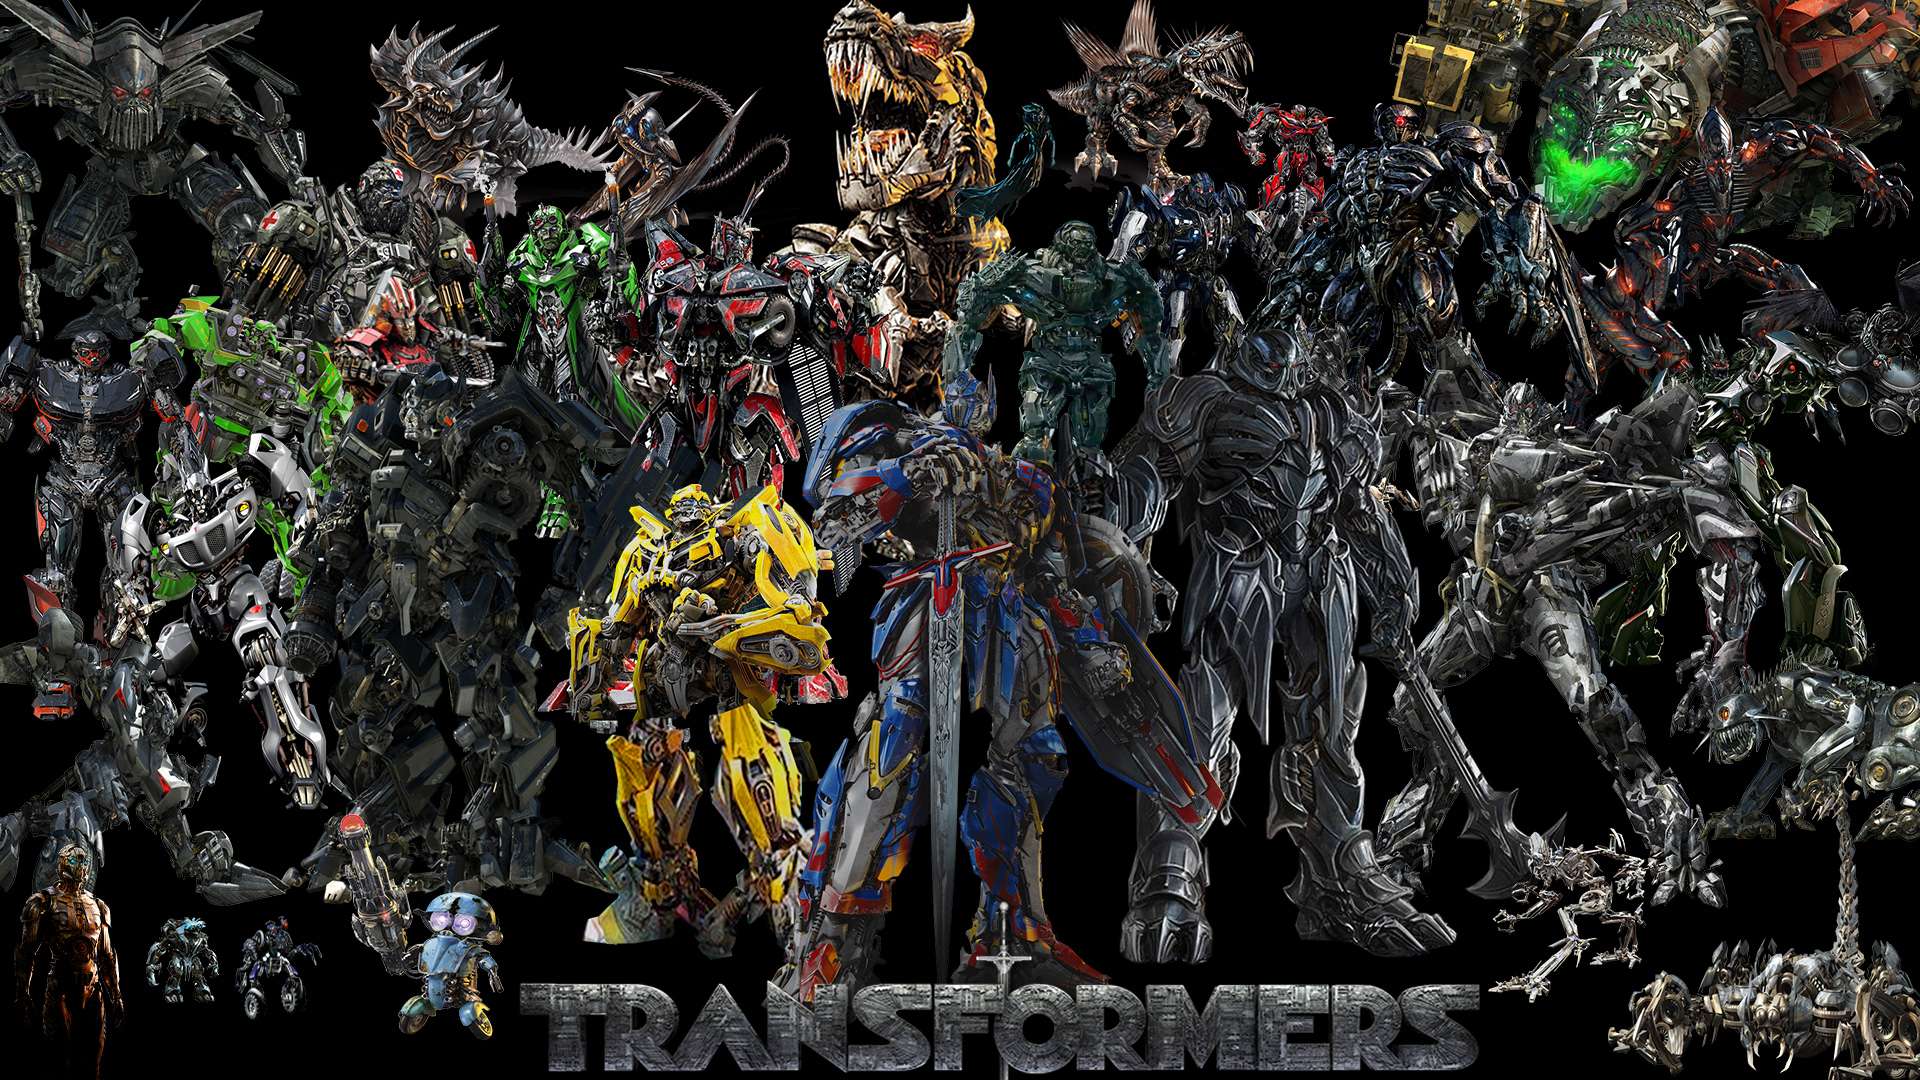 Transformers Cinematic Universe -10th anniversary by The